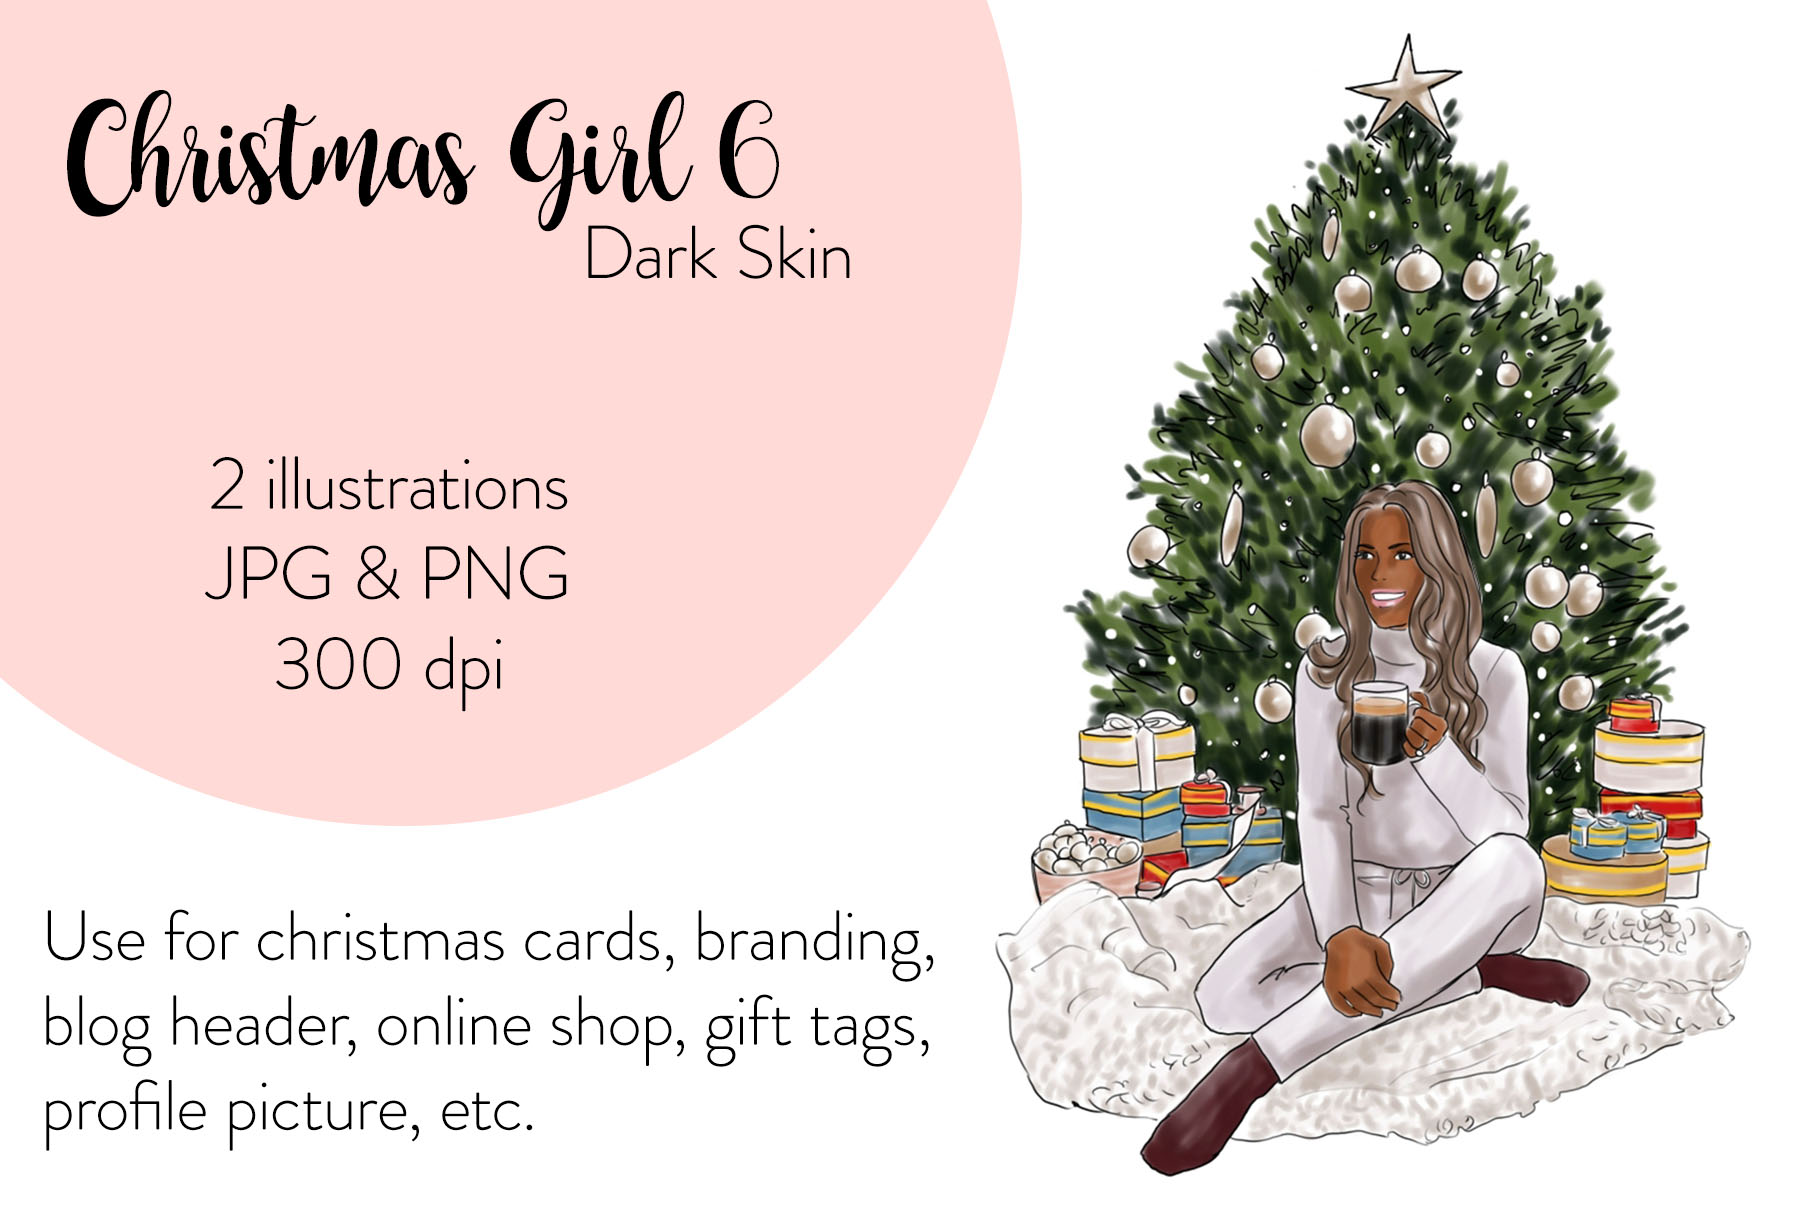 Fashion illustration - Christmas Girl 6 - Dark Skin example image 1